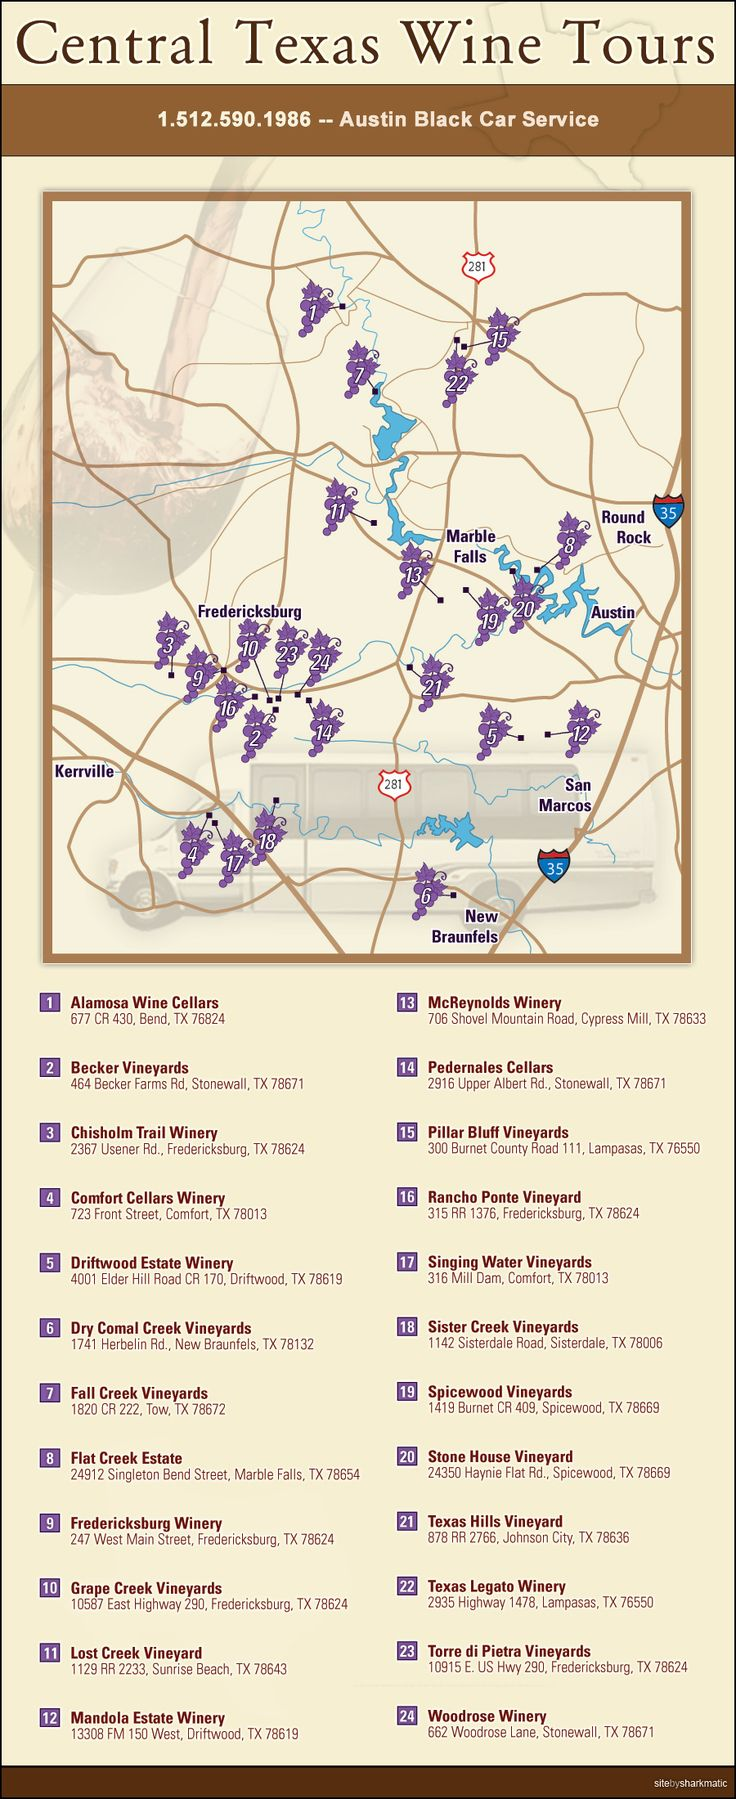 Central Texas Wine Trail | Oh, the places I'll go! | Pinterest | Texas travel, Texas and Texas wineries